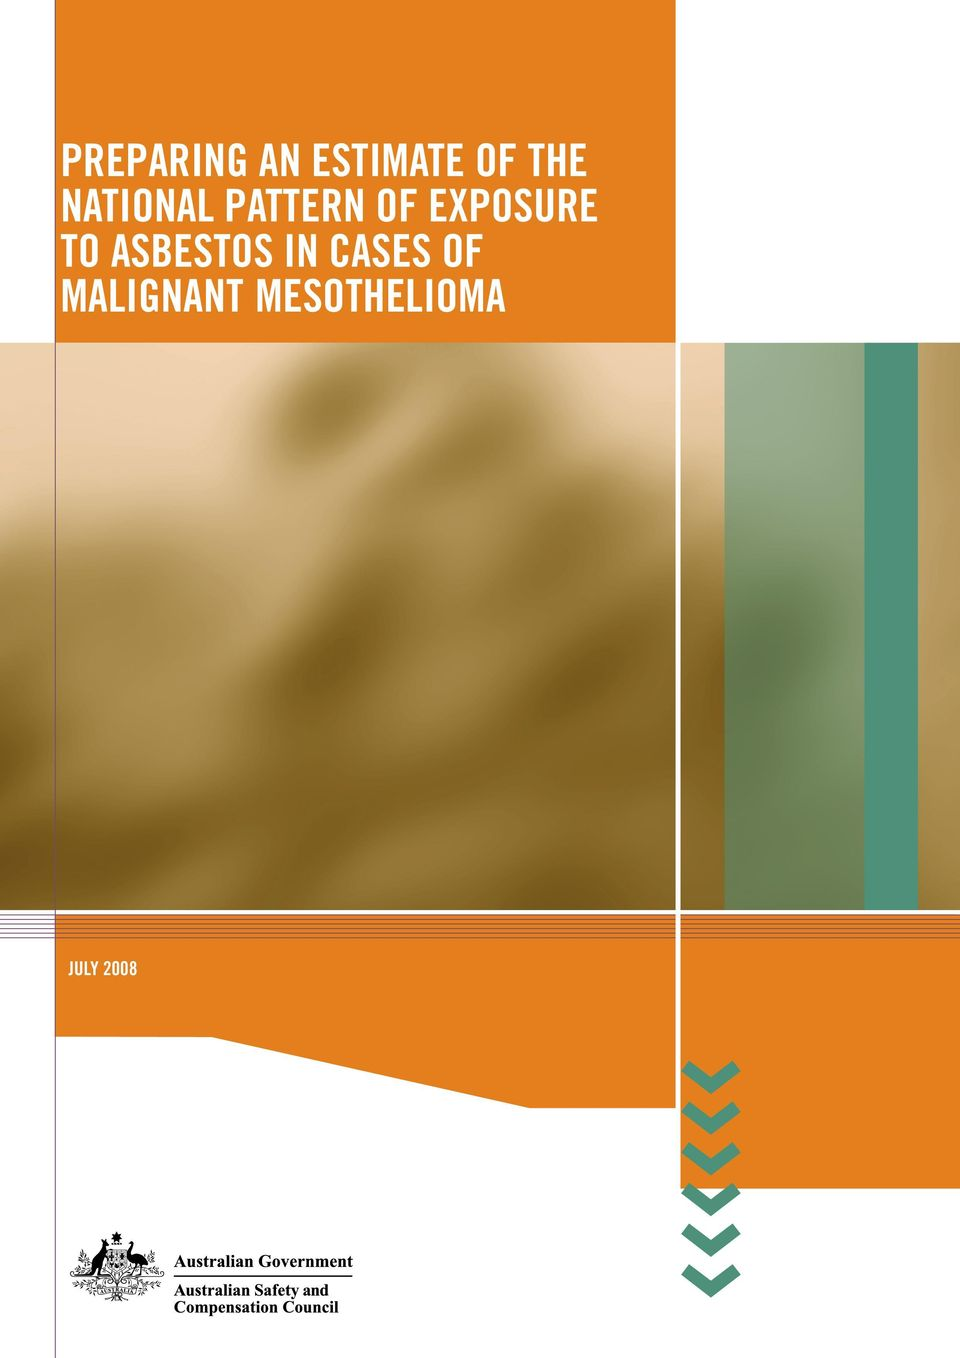 to asbestos in cases of